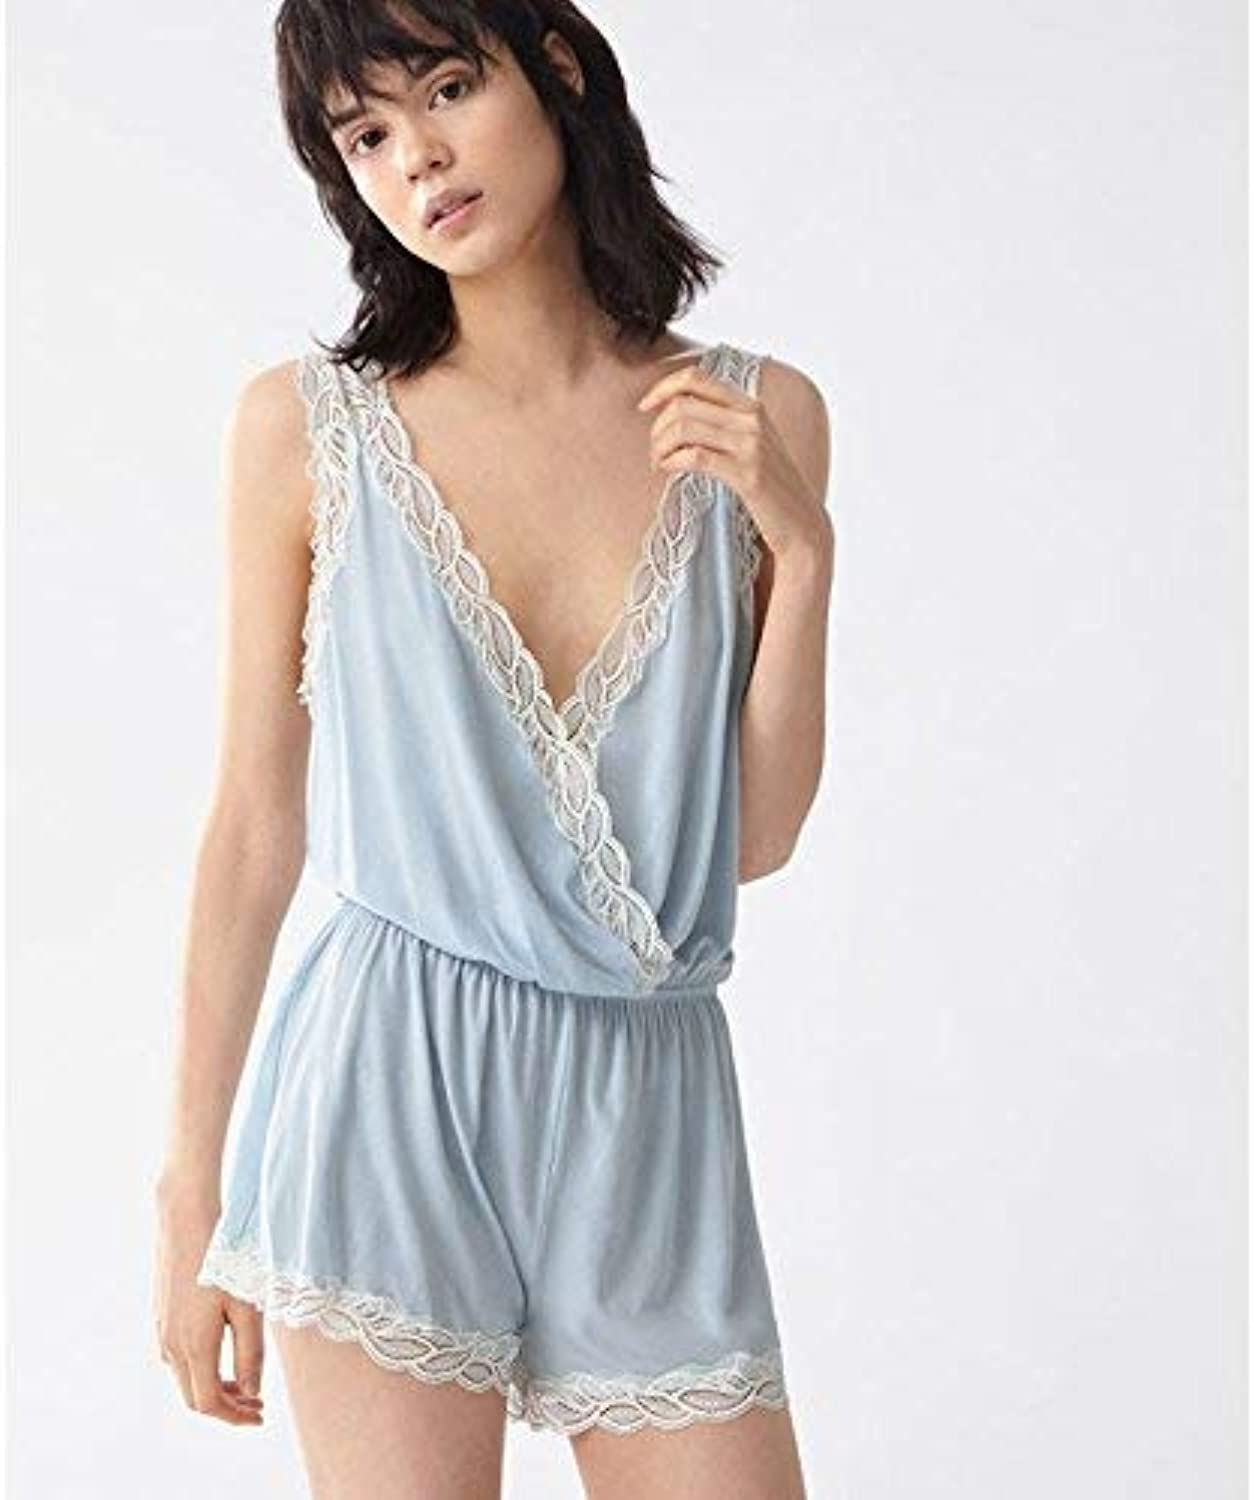 Leaf lace Sleeveless Jumpsuit Home Ladies Pajamas Summer Shorts (color   Sky bluee, Size   Medium)